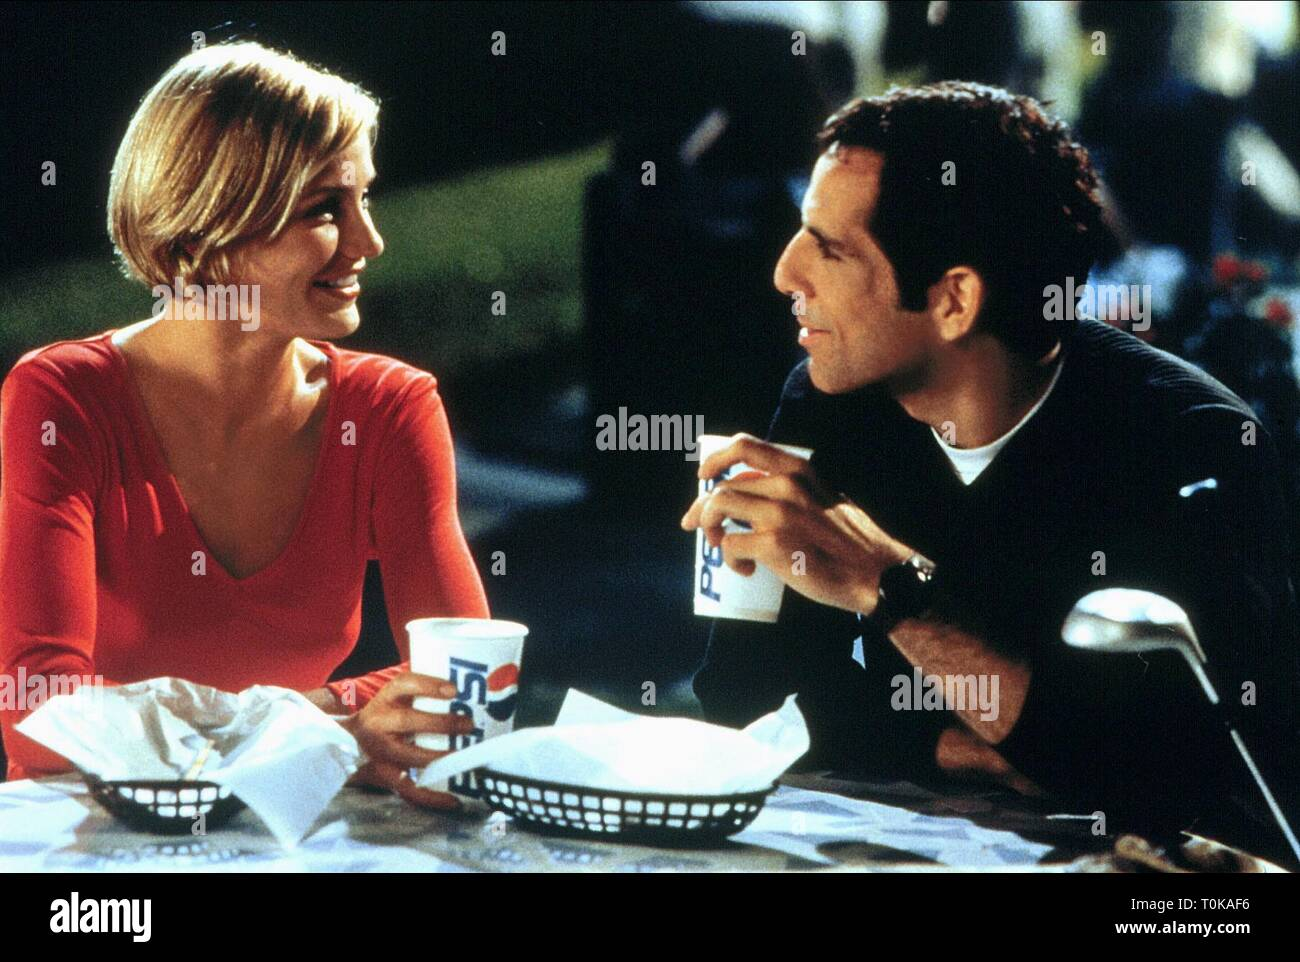 CAMERON DIAZ, BEN STILLER, THERE'S SOMETHING ABOUT MARY, 1998 - Stock Image